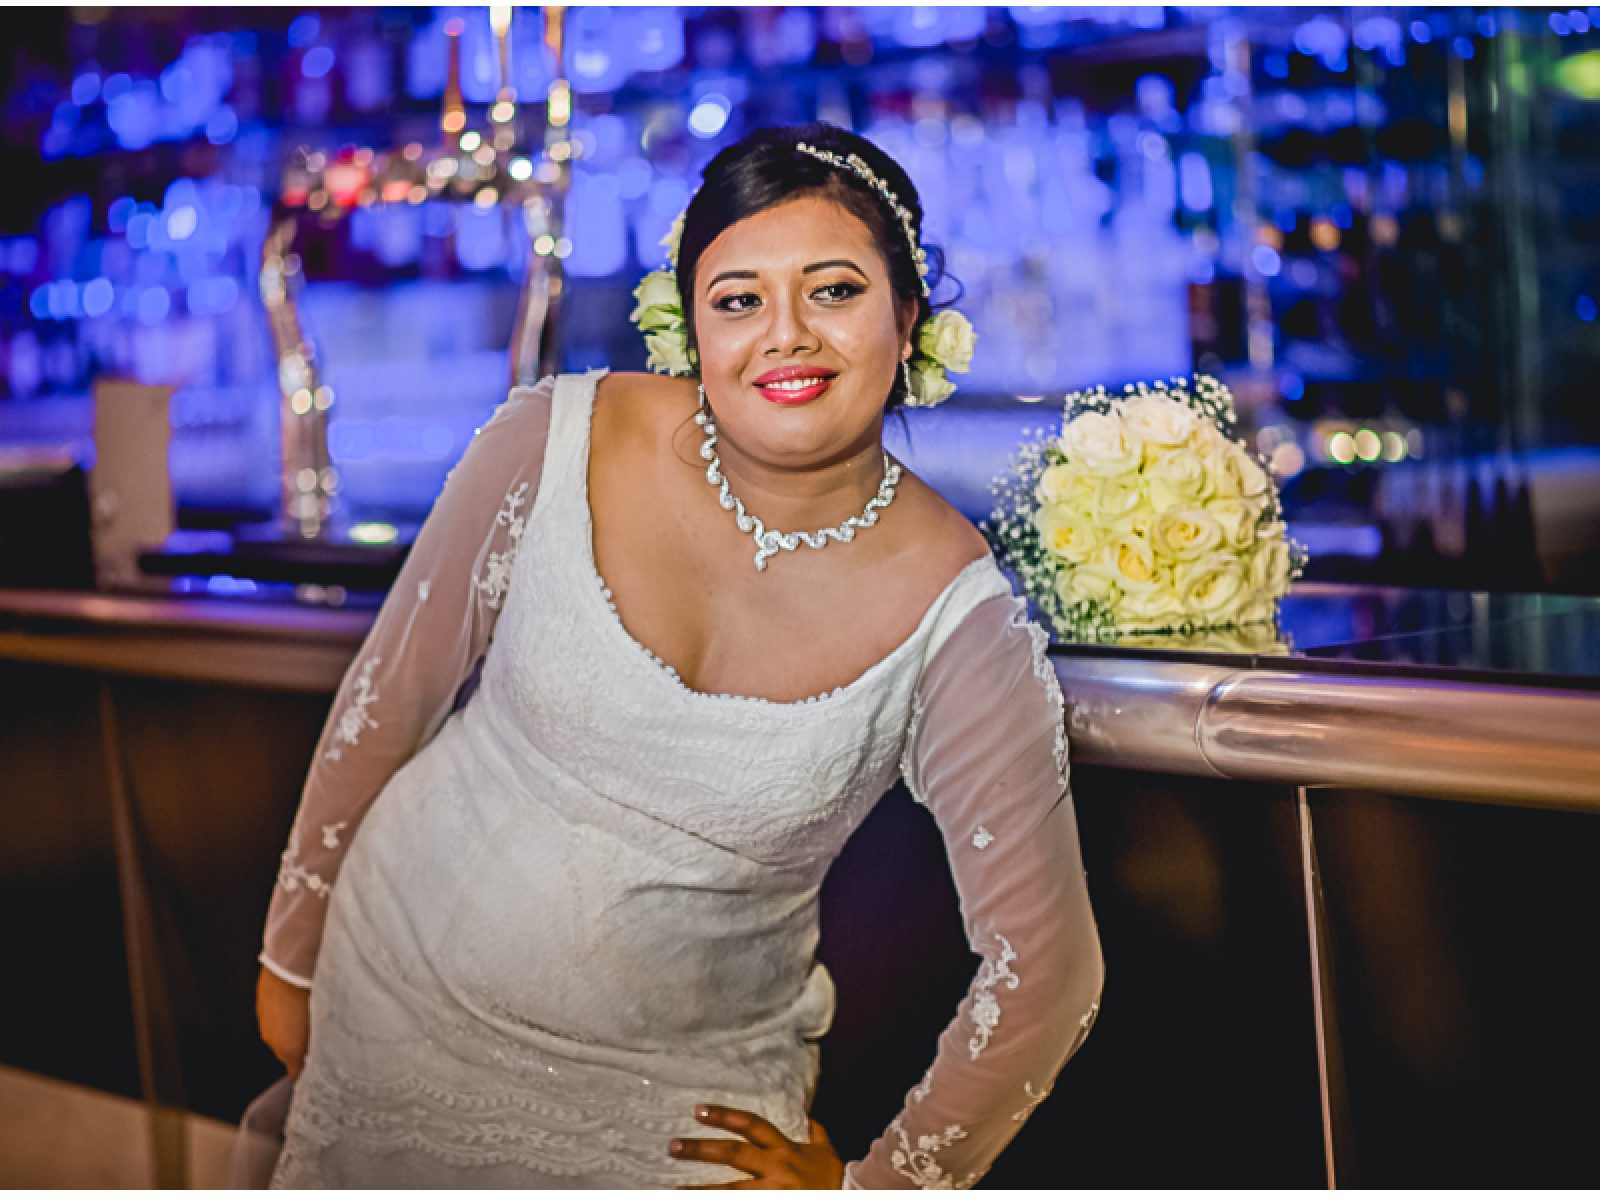 191 1600x1200 - Darshani and Anthony - wedding photographer in London